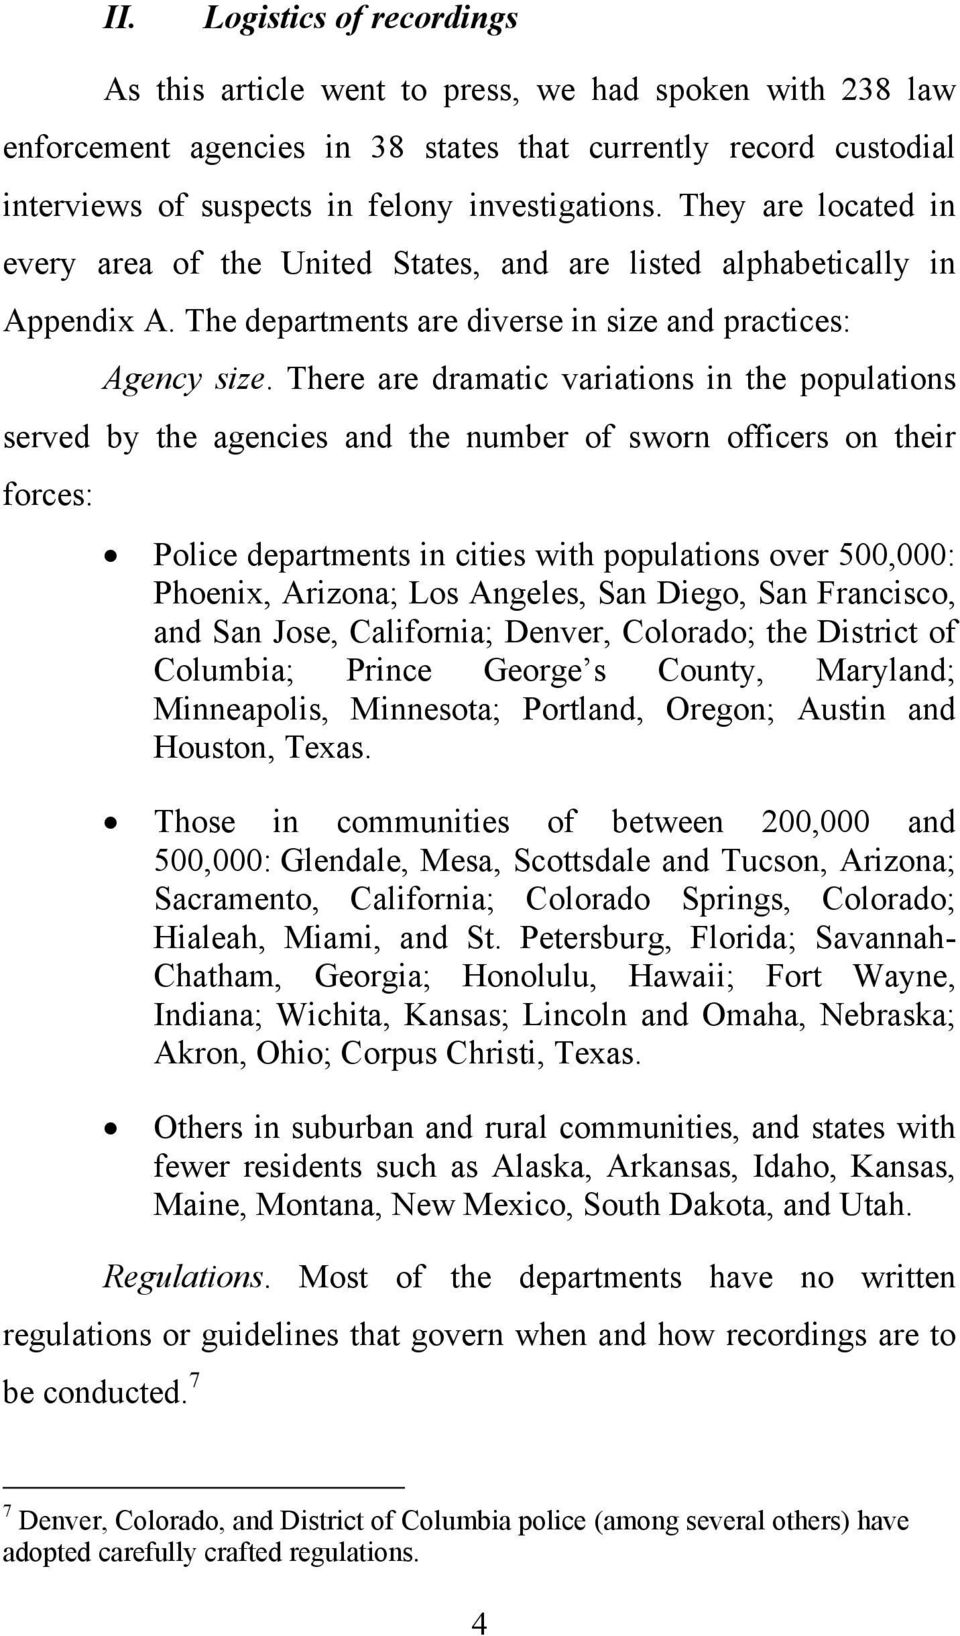 There are dramatic variations in the populations served by the agencies and the number of sworn officers on their forces: Police departments in cities with populations over 500,000: Phoeni, Arizona;